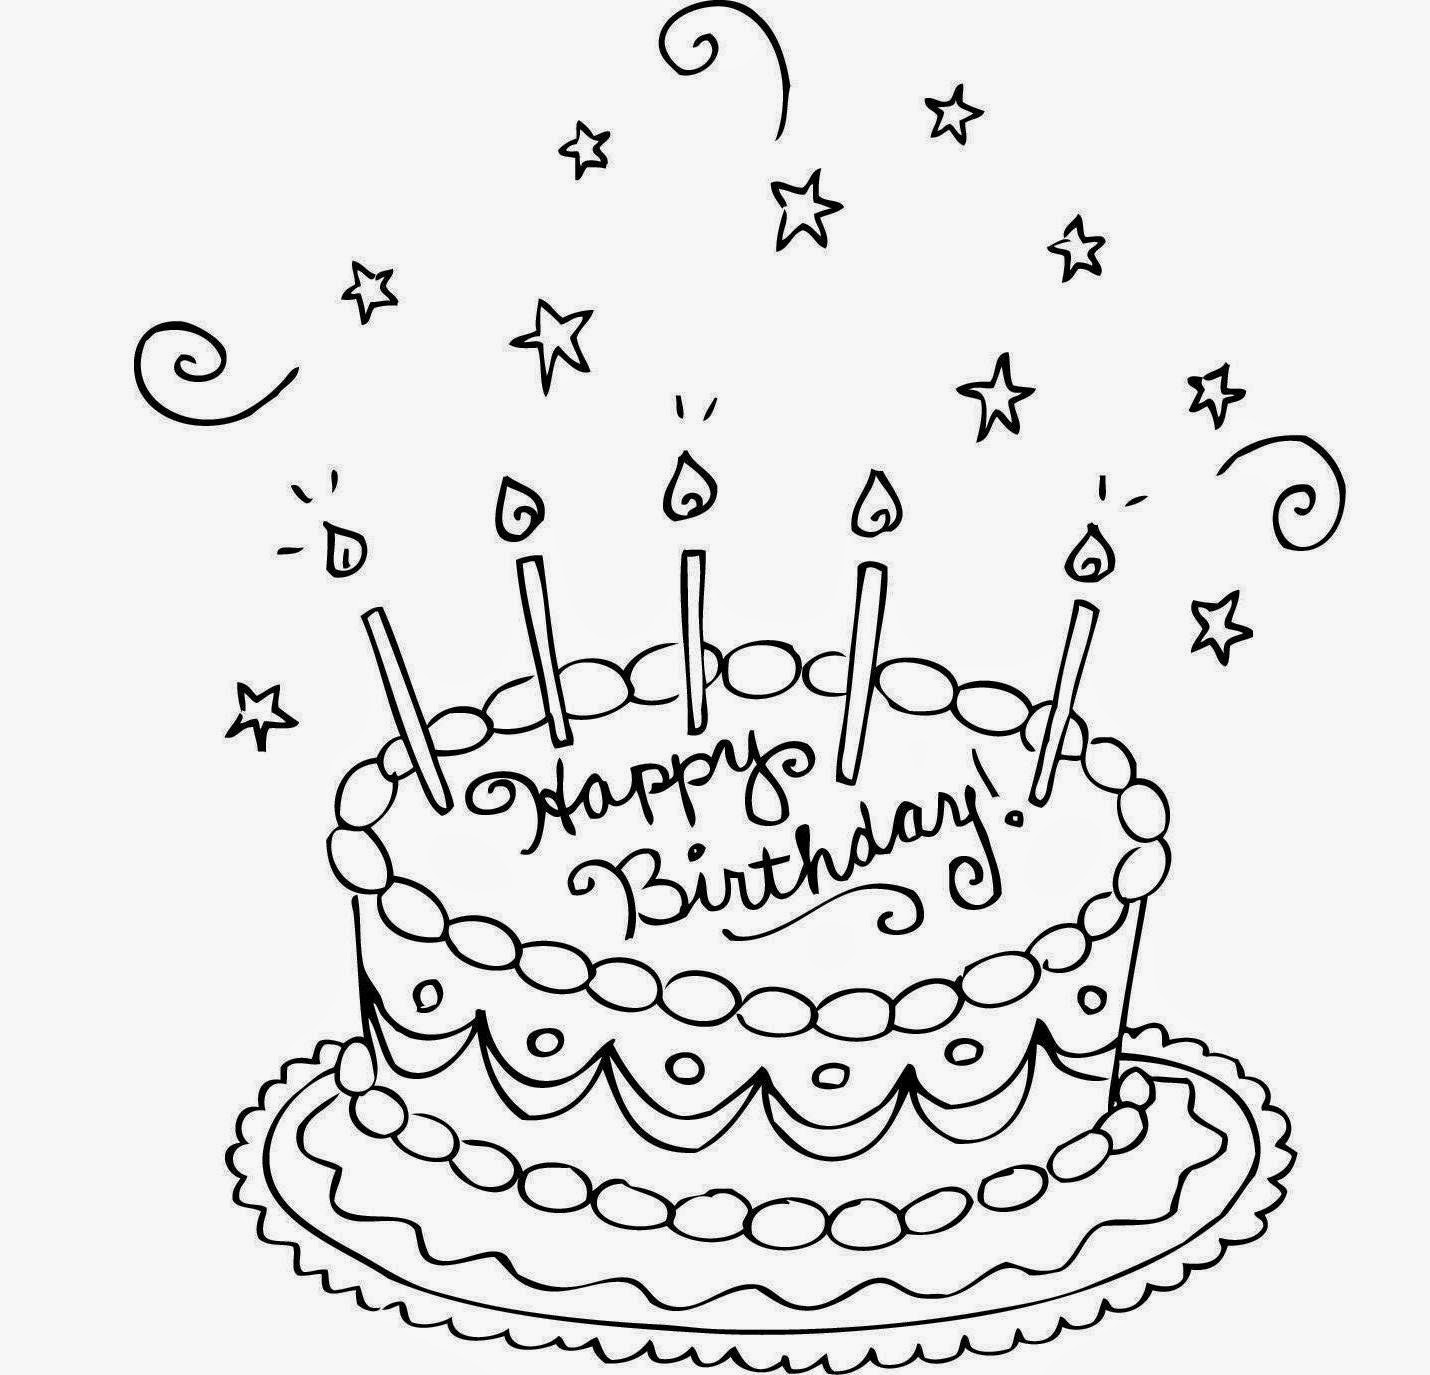 coloring book birthday cake ; happy-birthday-cake-coloring-wallpaper-for-kid-drawing-grig3org-happy-birthday-cake-drawings